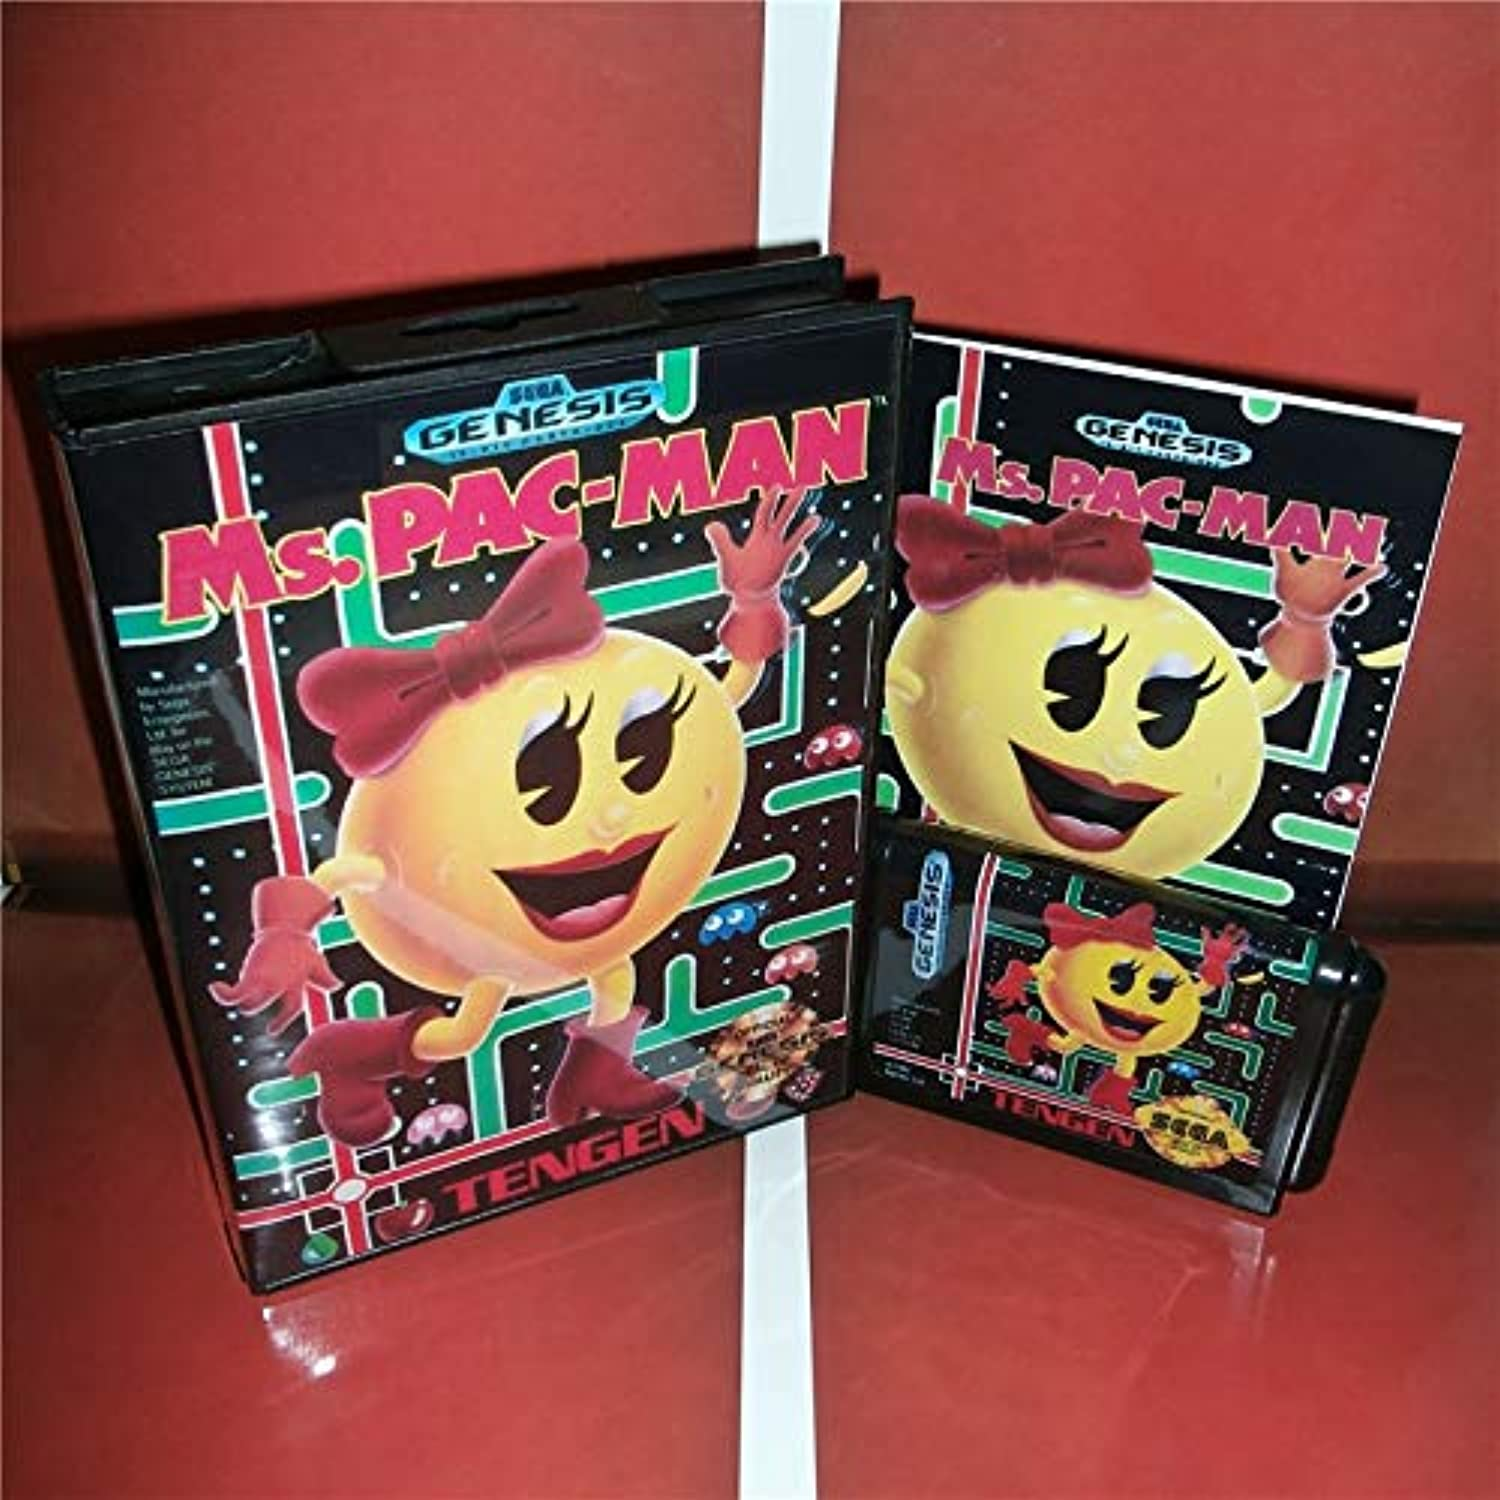 Value-Smart-ToysMs.Pac-Man US Cover with Box and Manual for Sega Megadrive Genesis Video Game Console 16 bit MD Card